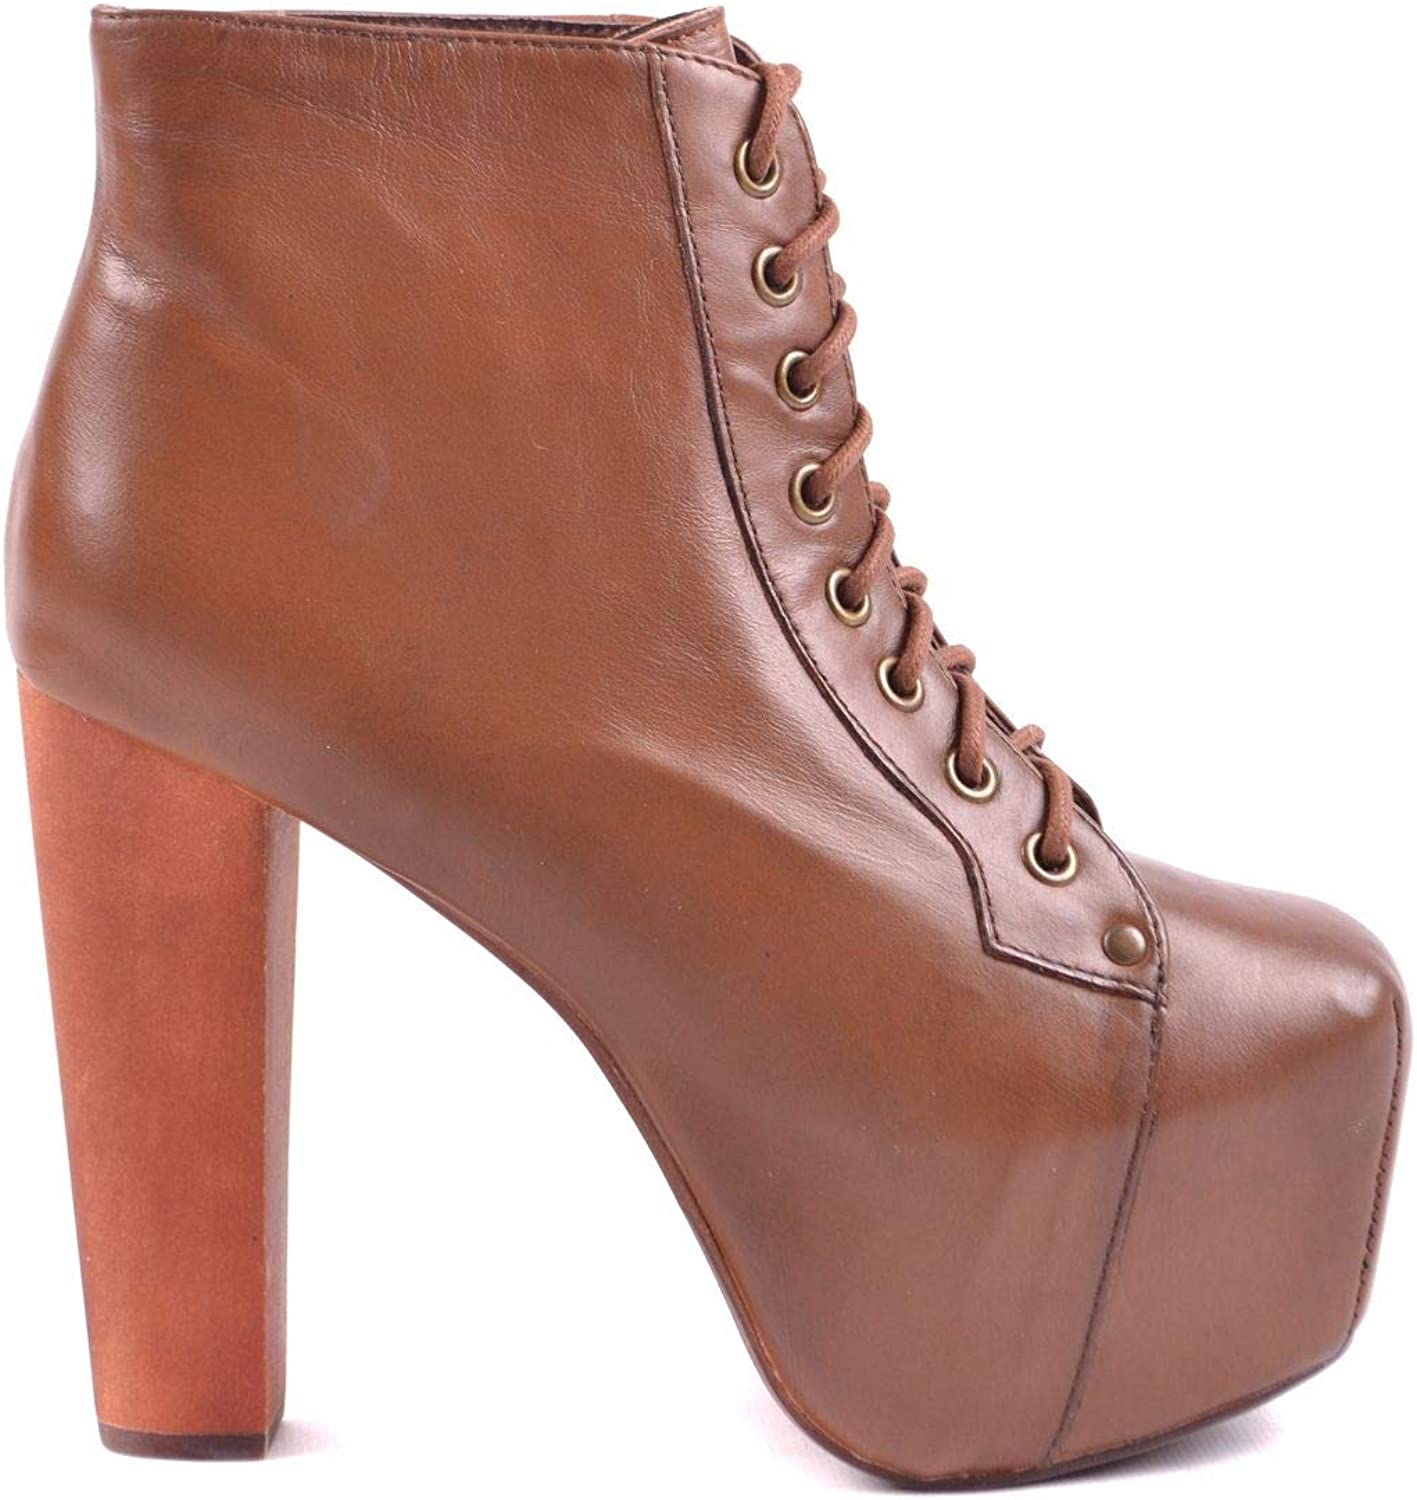 Jeffrey Campbell Women's MCBI32865 Brown Leather Ankle Boots